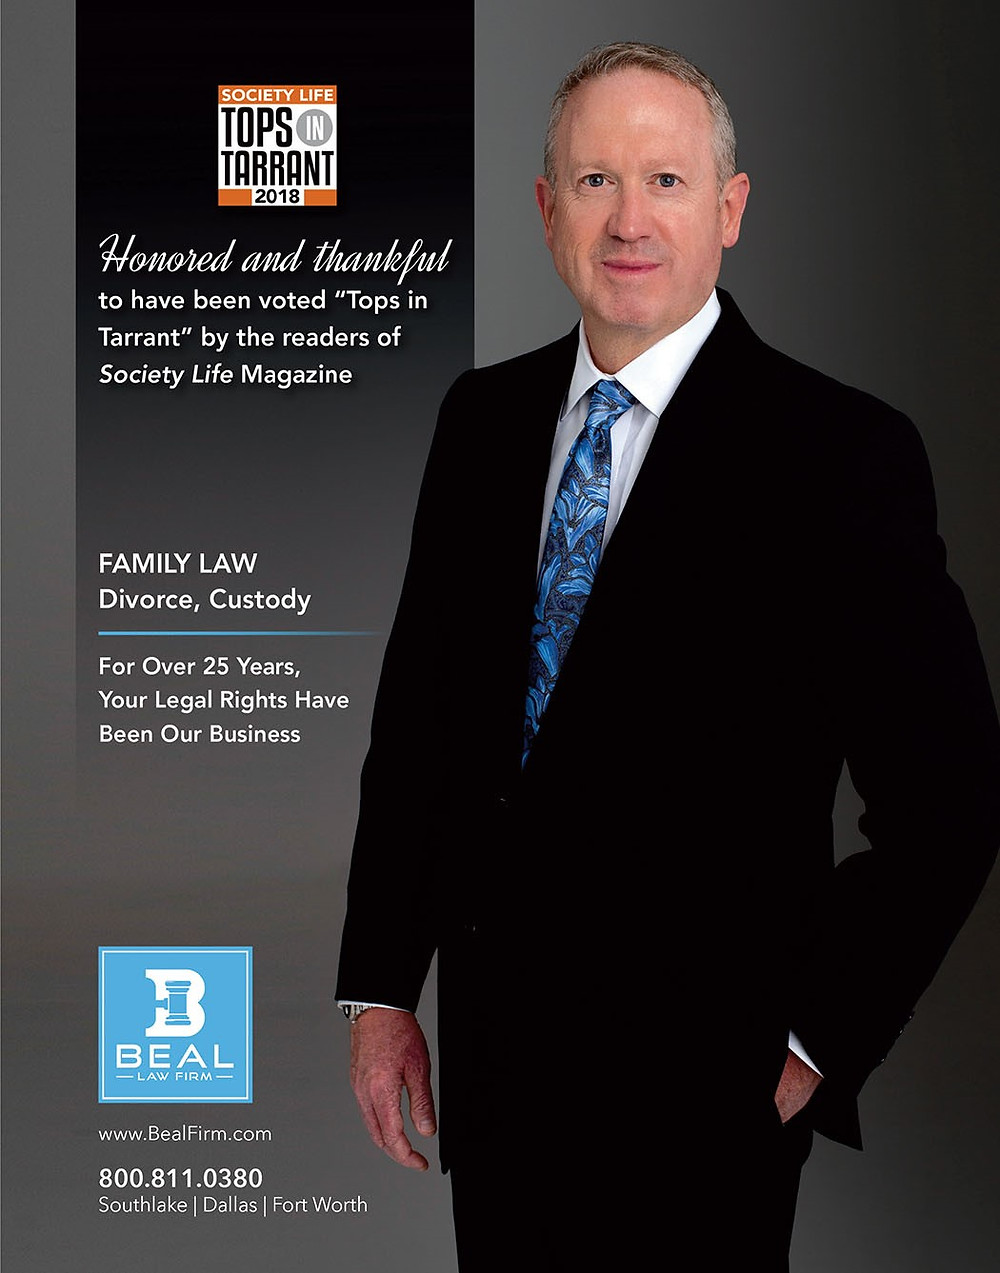 Southlake Divorce Lawyer Eric Beal of Beal Law Firm